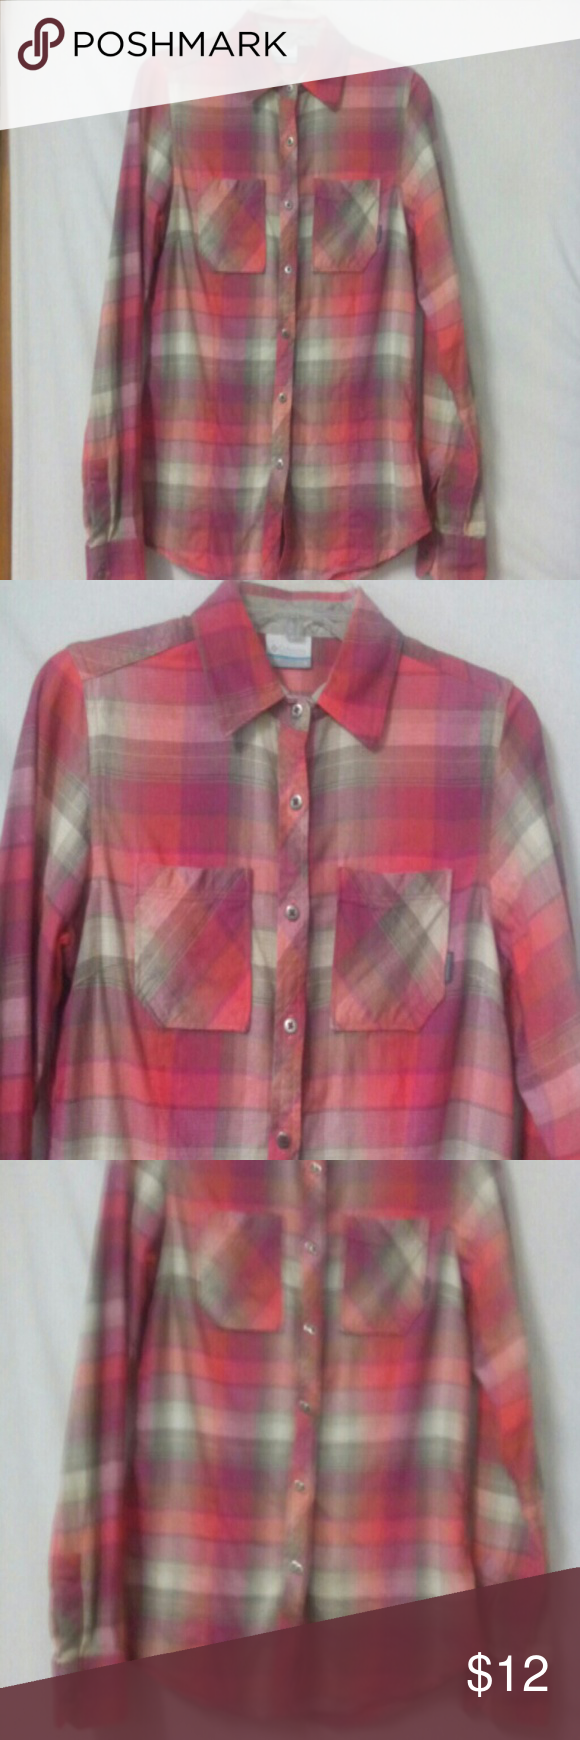 Columbia flannel jacket  Columbia Womenus Size Small Flannel Shirt  My Posh Closet